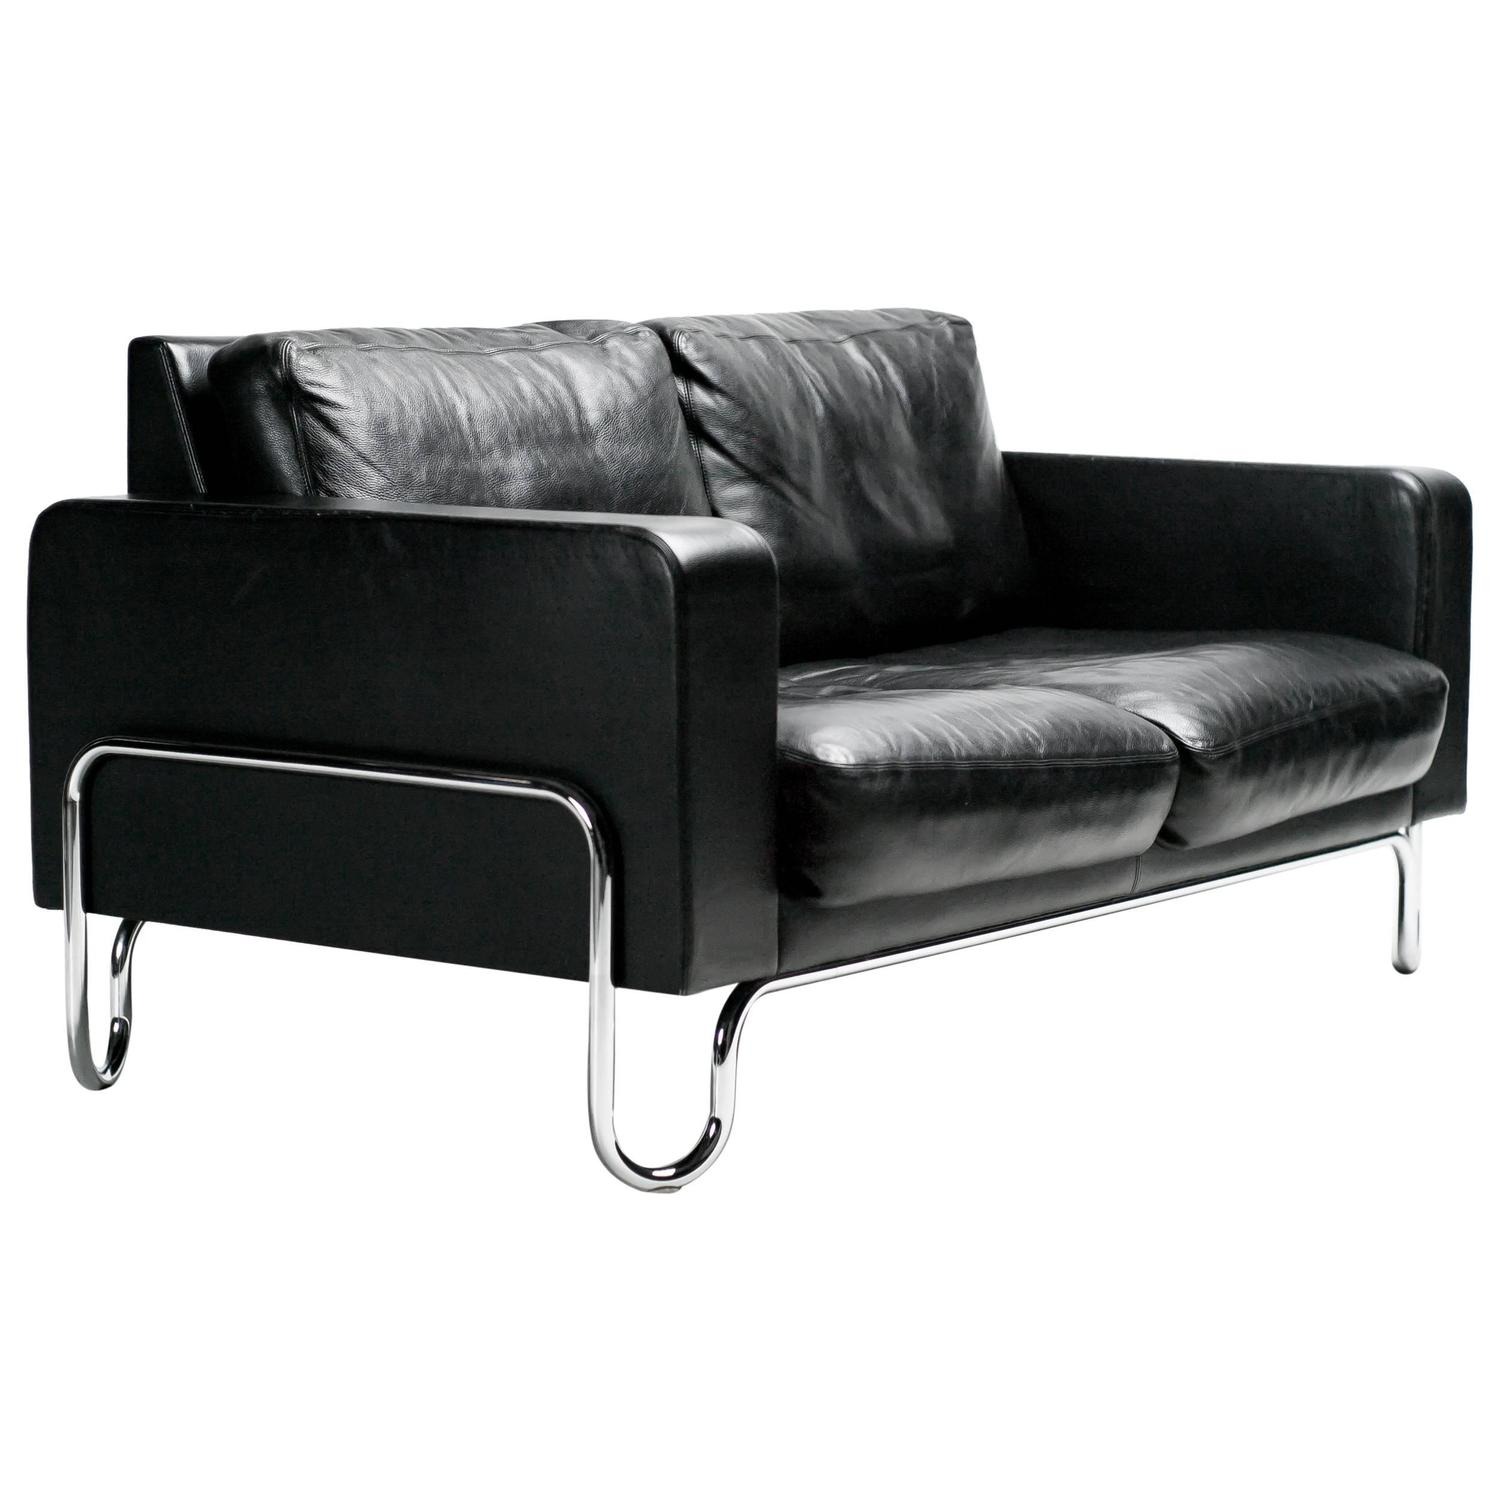 Gispen Sofa Gispen Ad Sofa At 1stdibs